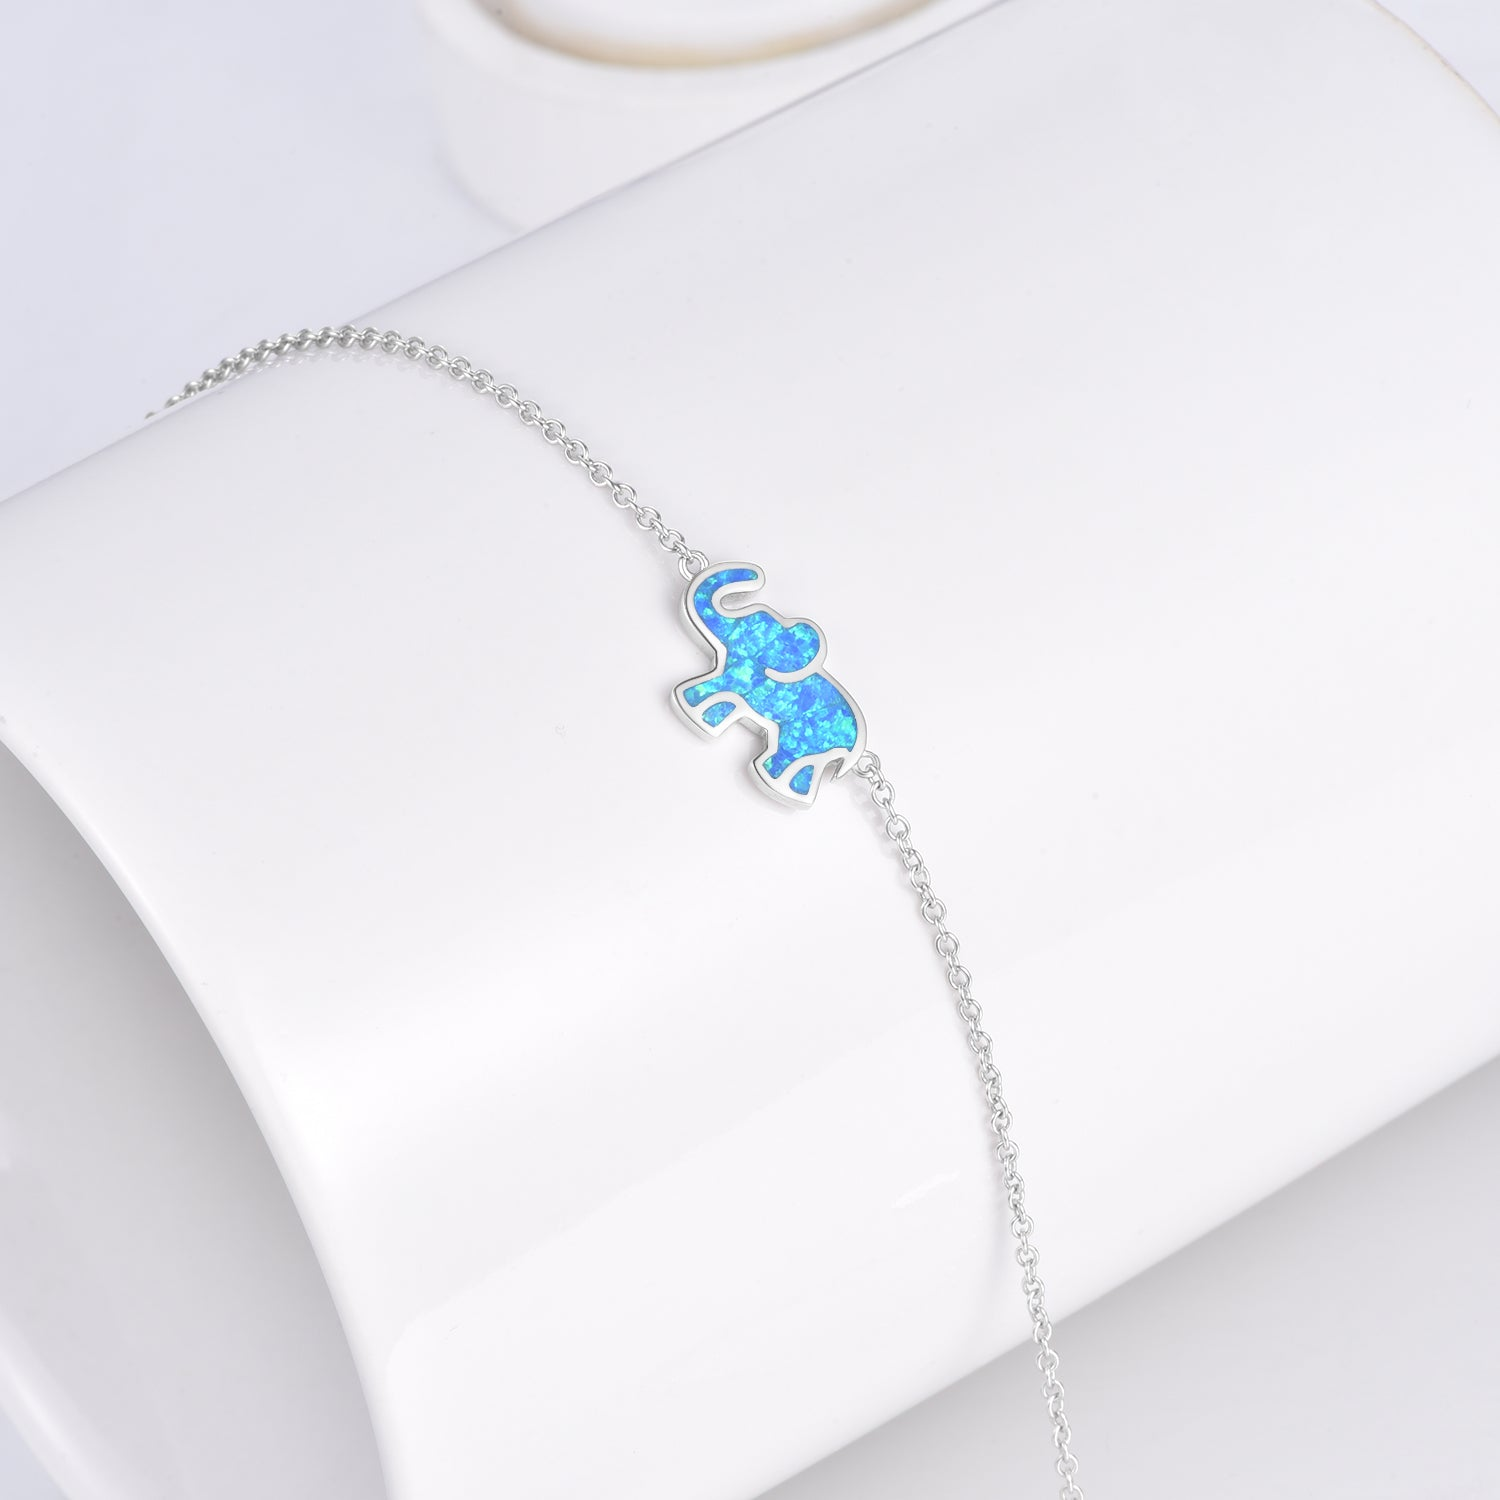 925 Sterling Silver Adjustable Cable Link Chain Good Luck Elephant Bracelets - onlyone